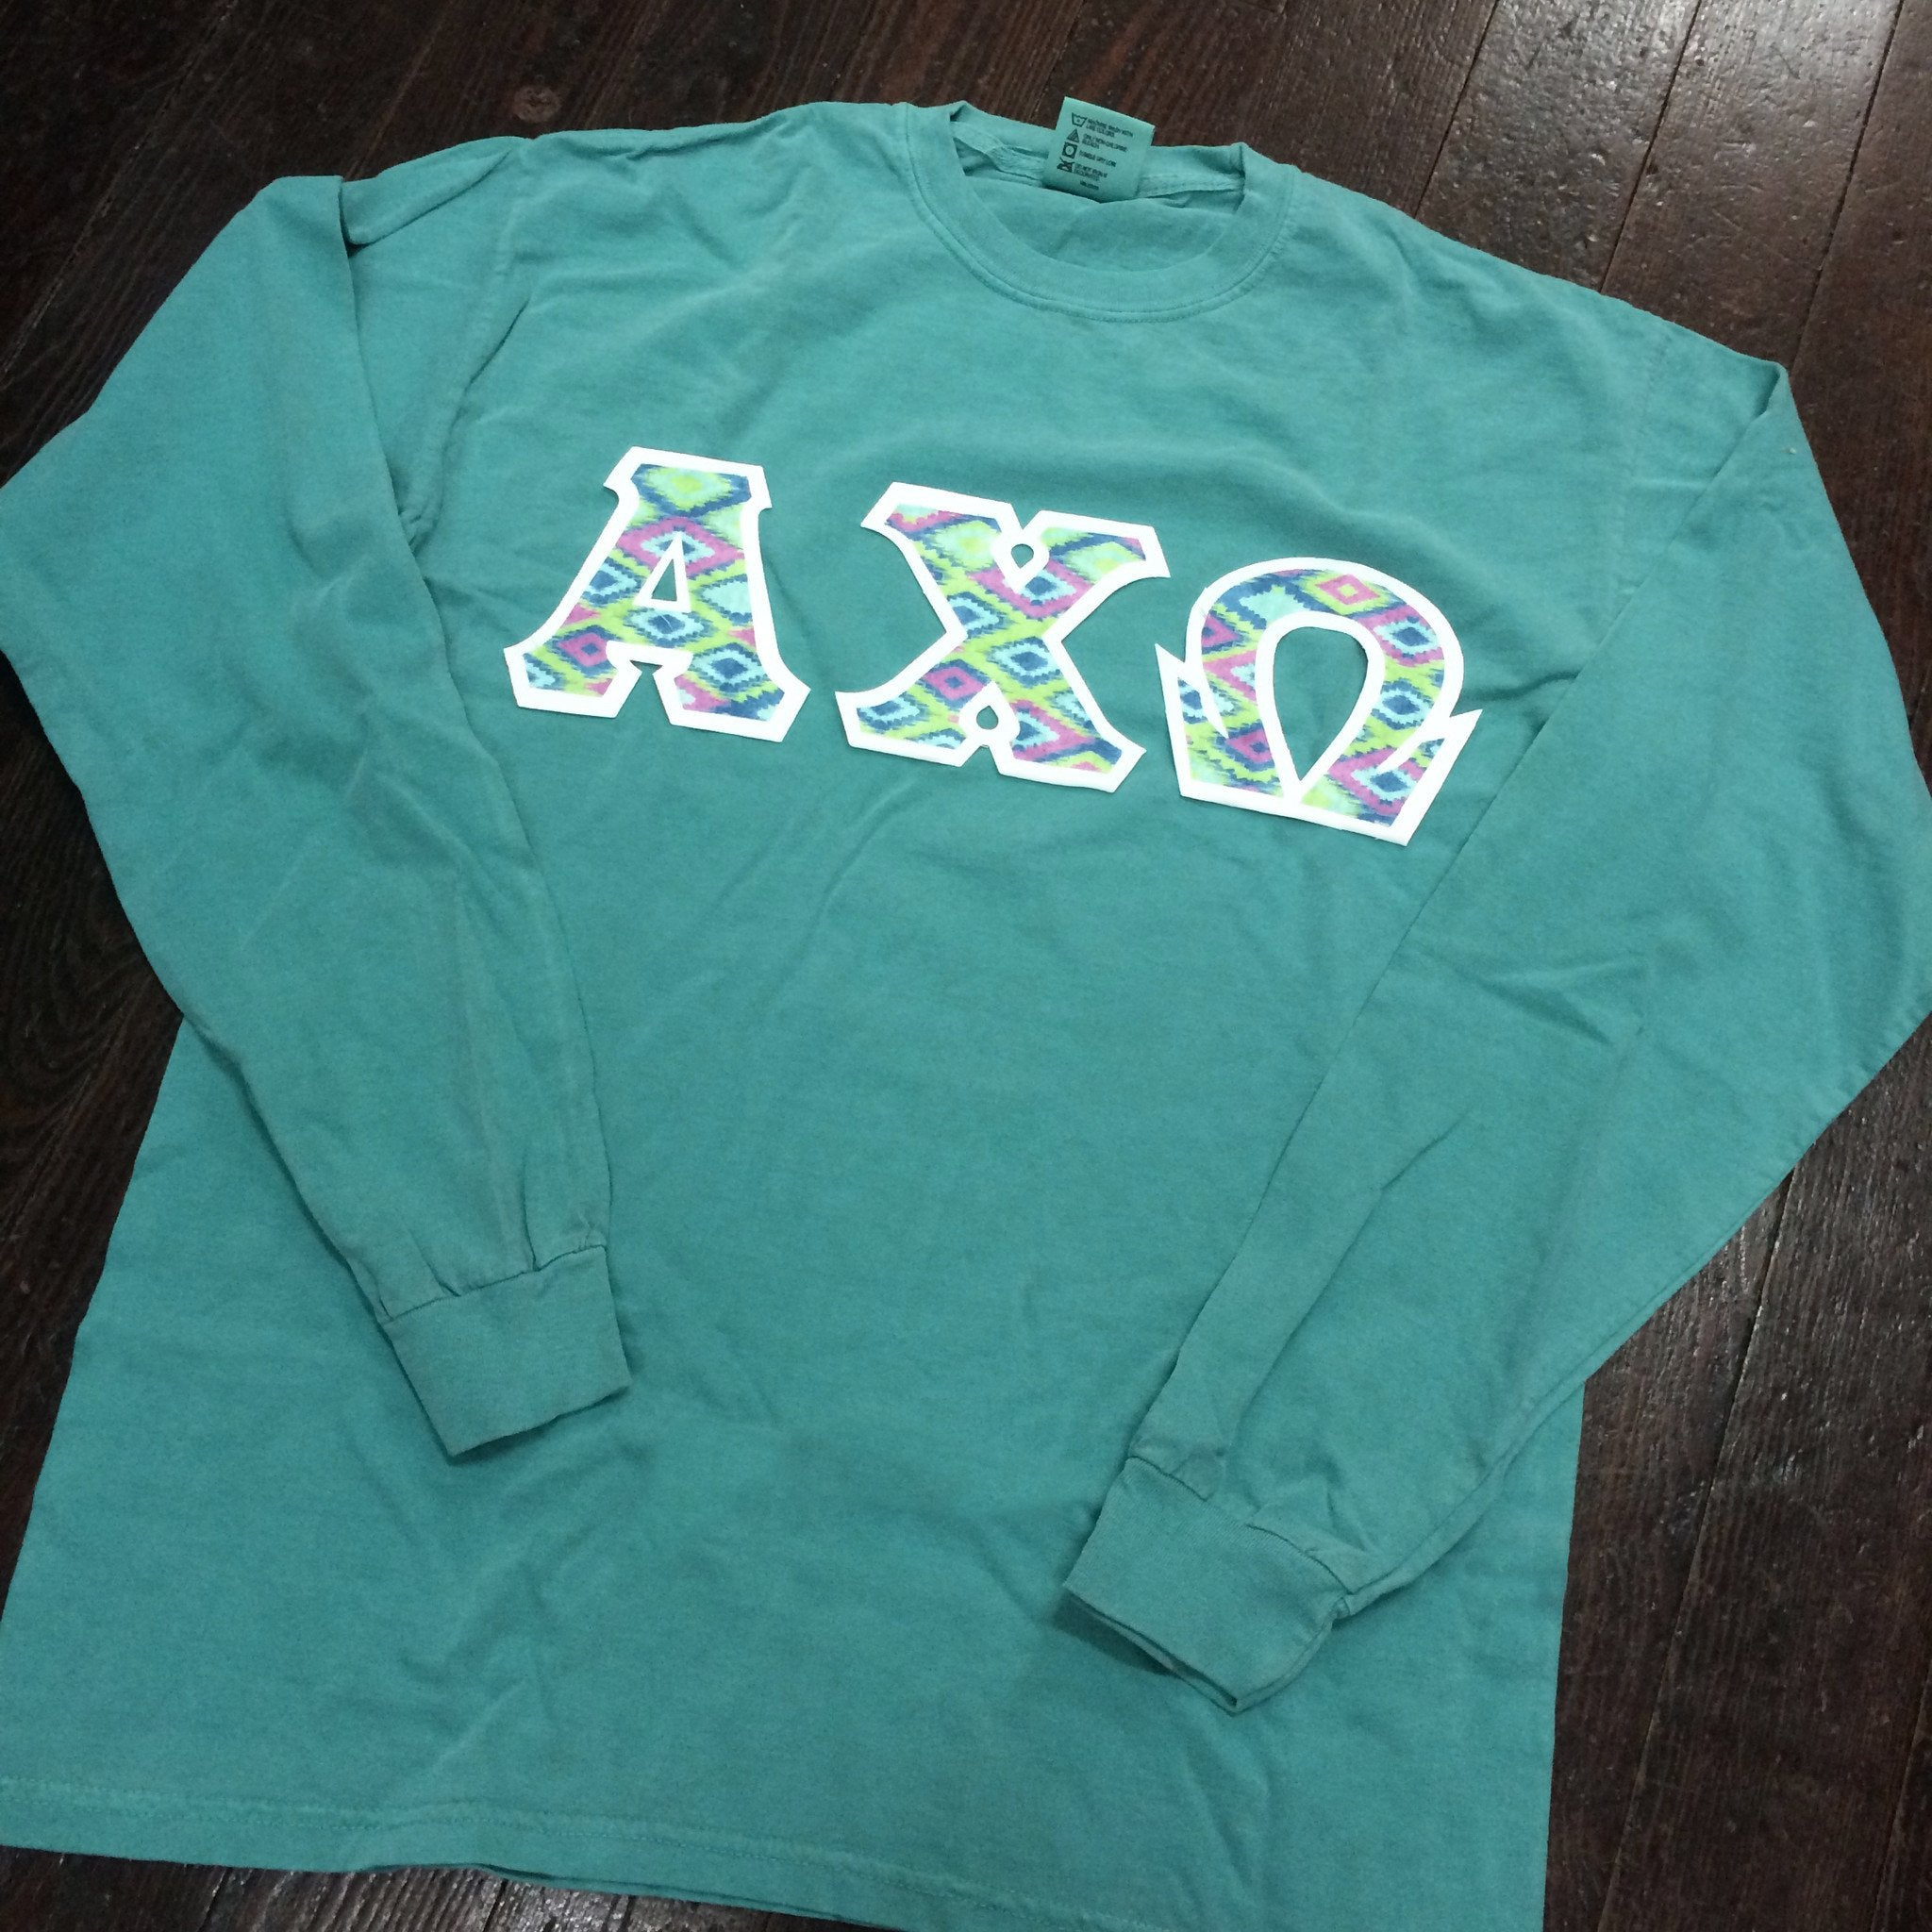 Sewn-Letter Comfort Colors Long Sleeve T-Shirt - Campus Connection - Campus Connection - 1